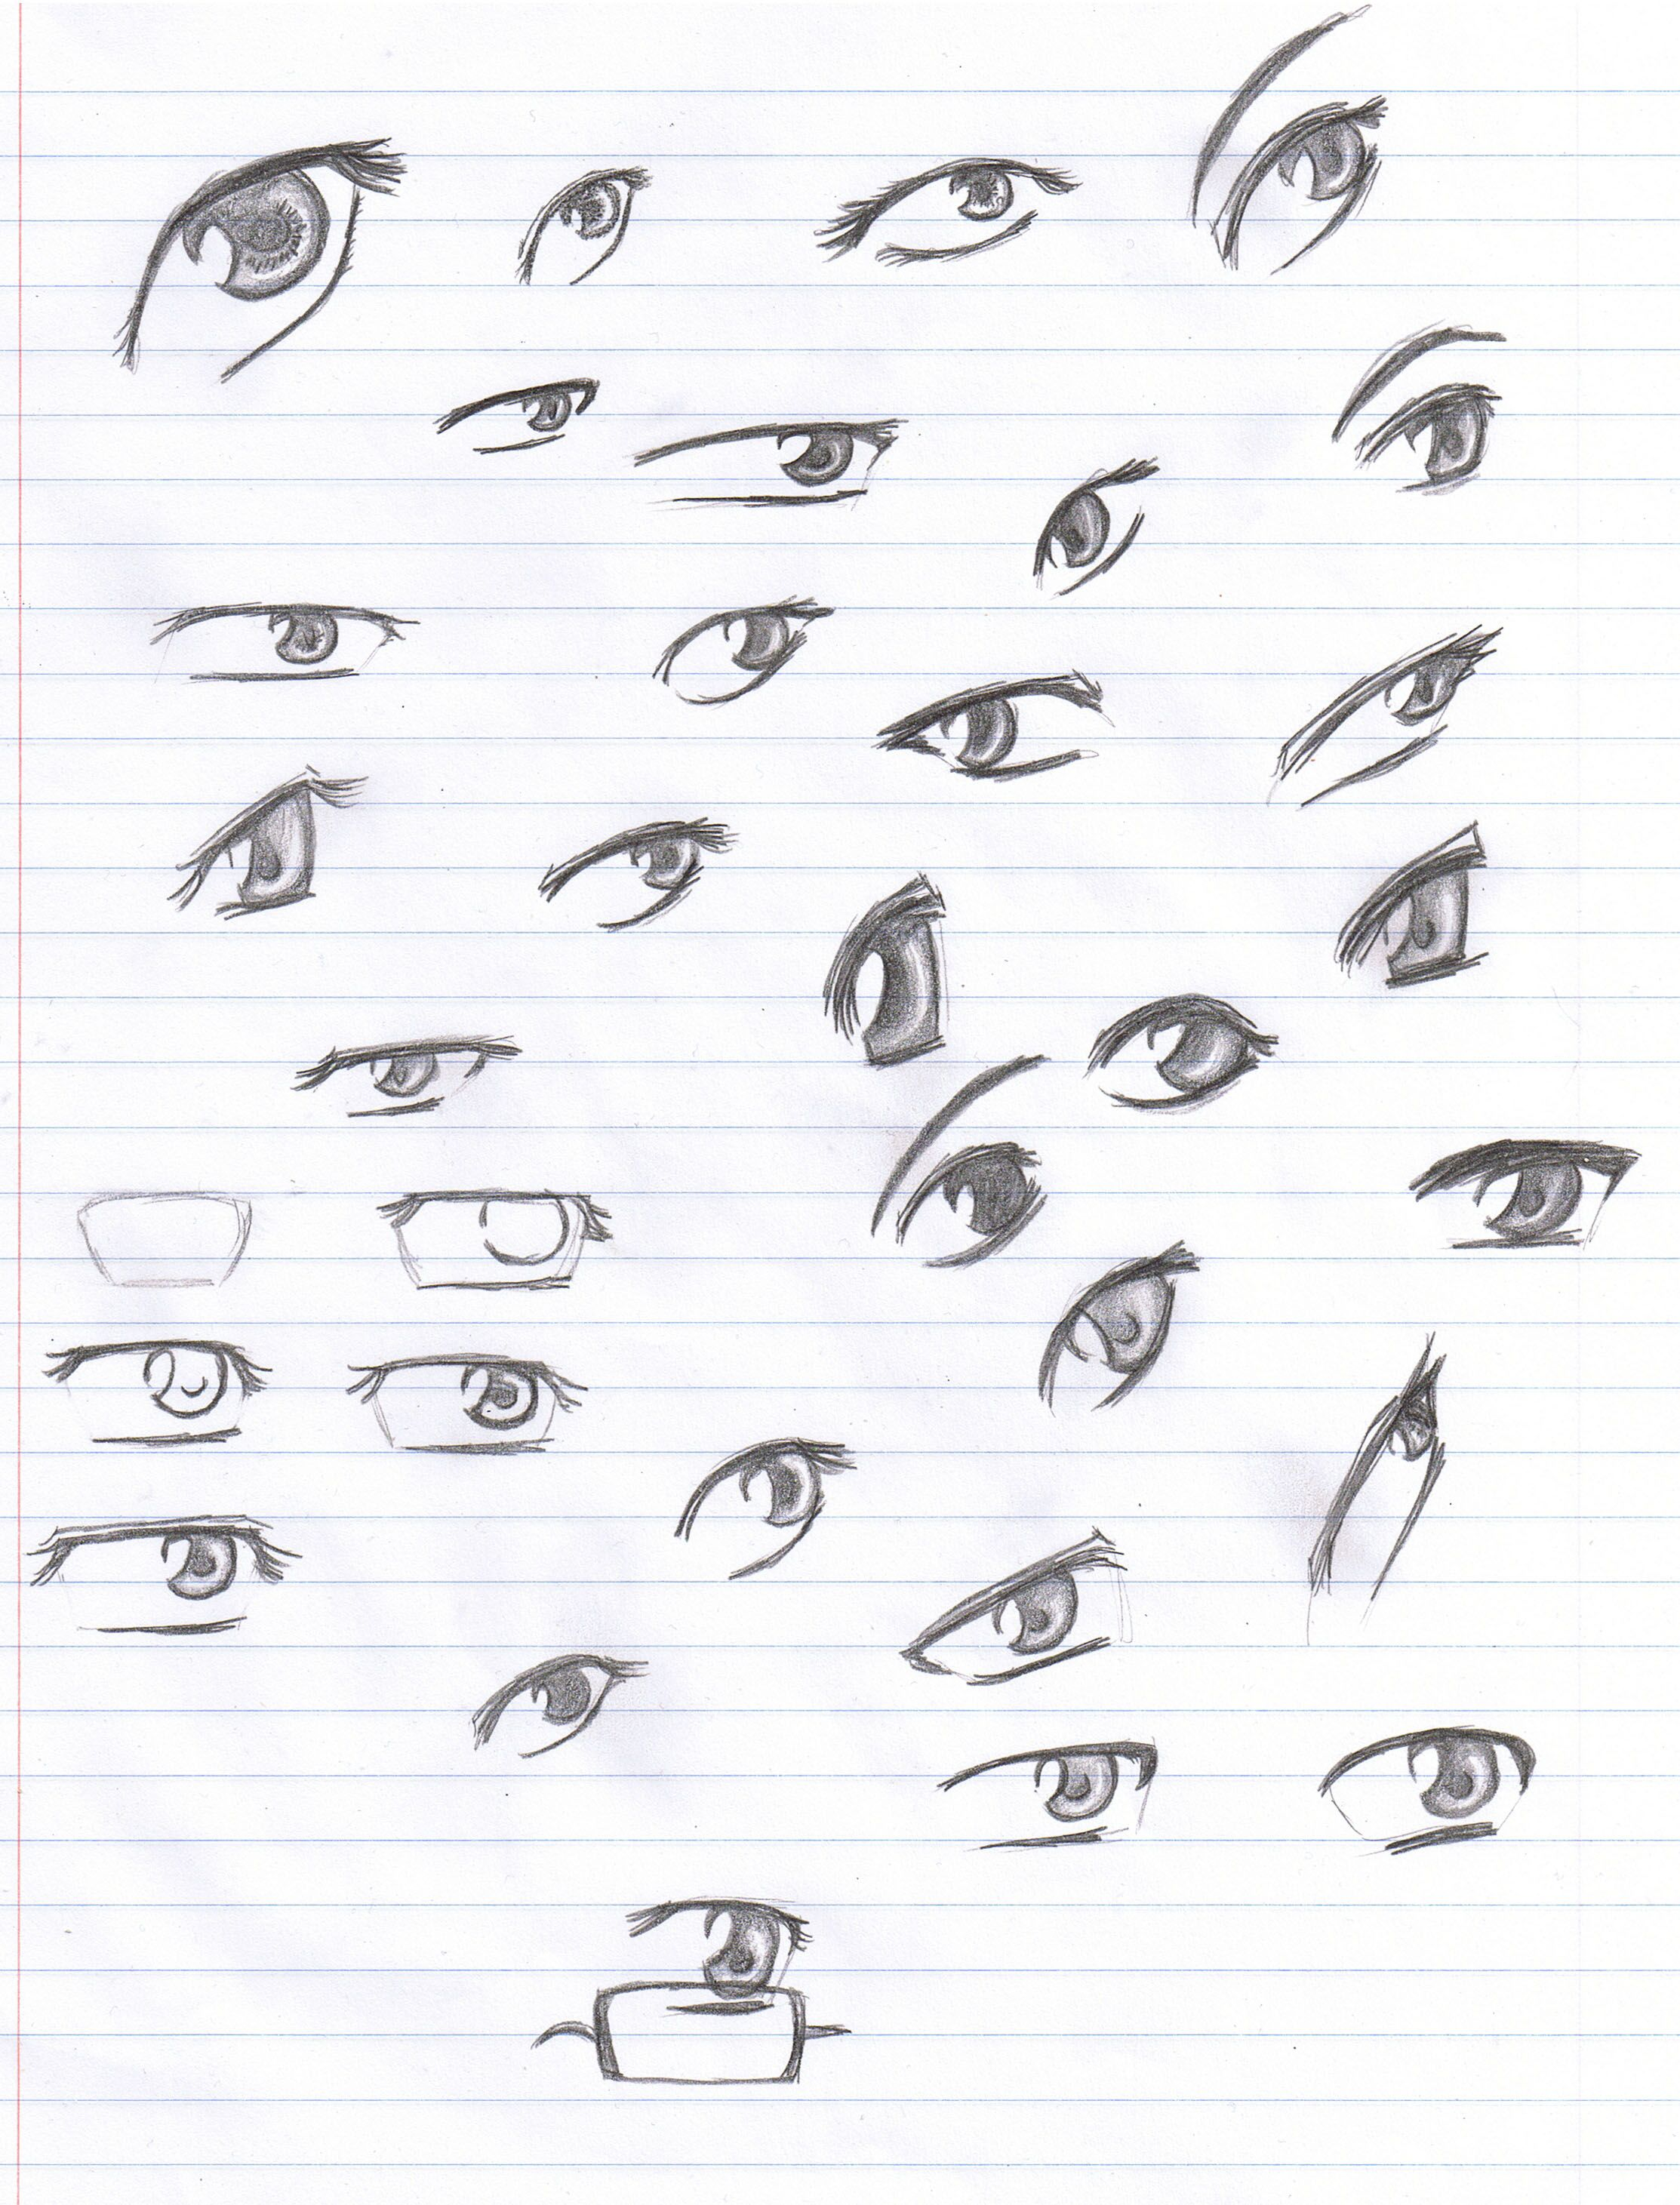 Anime Eyes Reference Pencil By Verie On Deviantart Anime Eyes Pencil Drawings Easy Eye Drawing